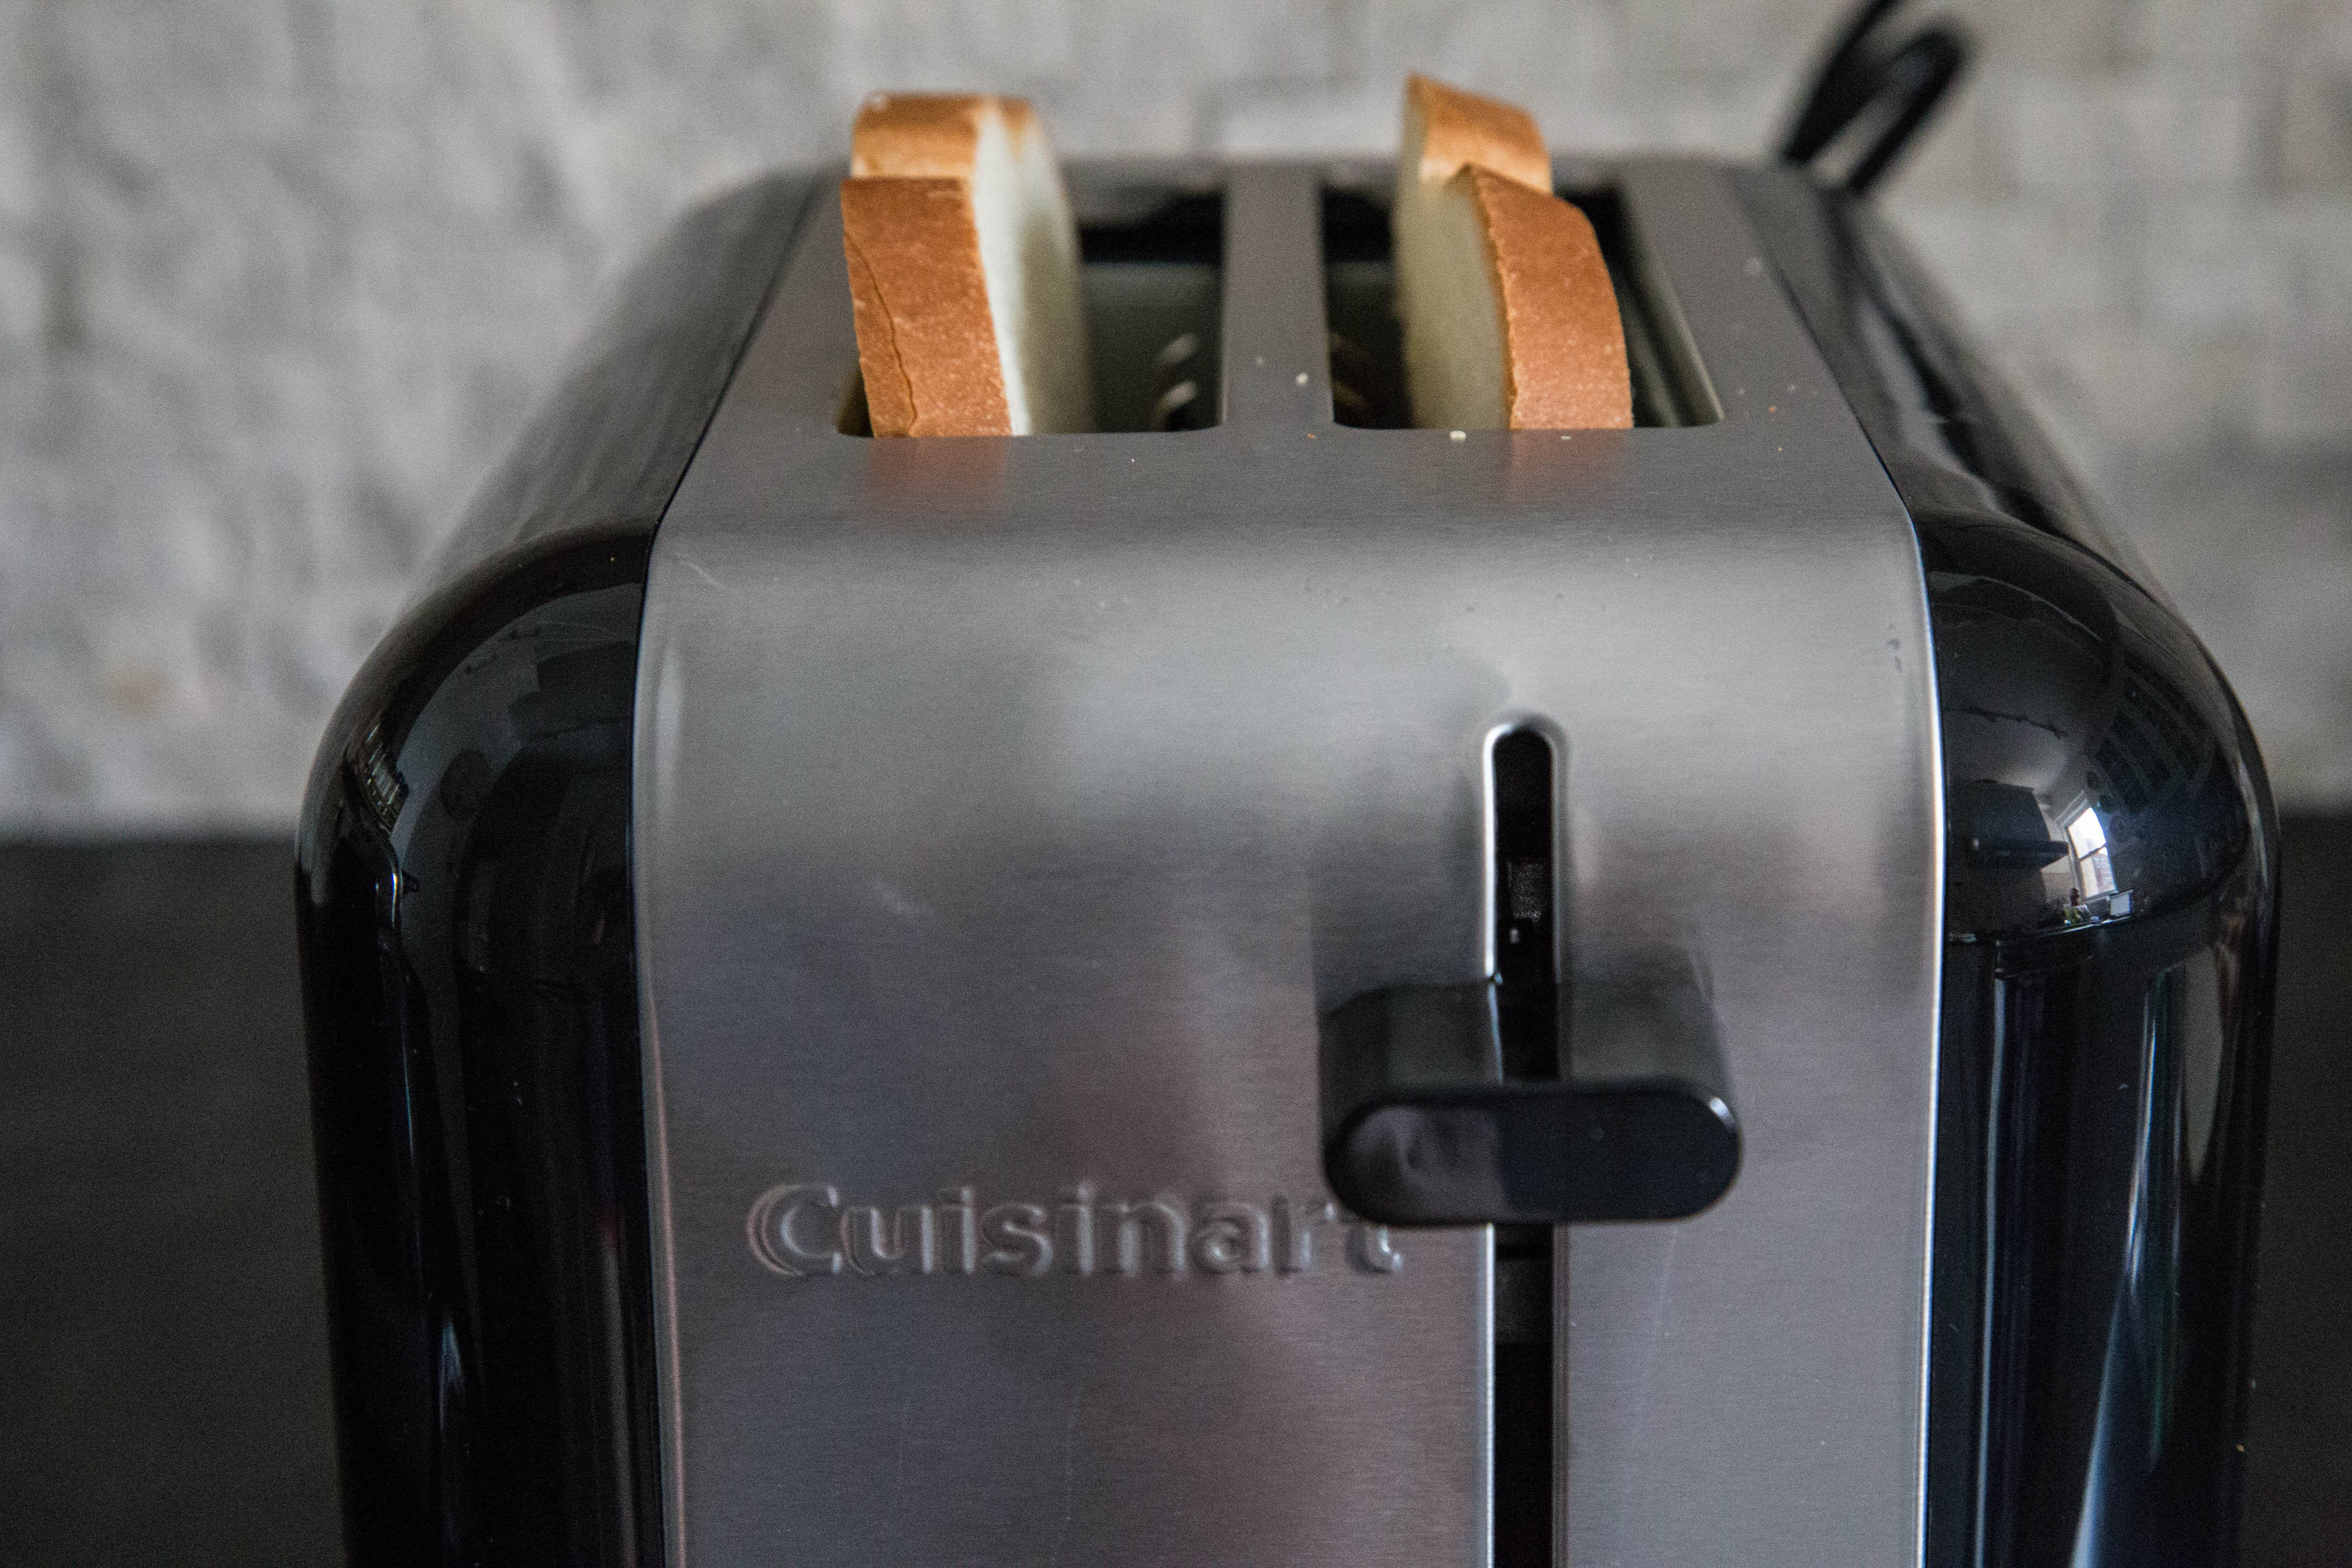 The Cuisinart Toaster Is Sleek, Compact & Stays Cool to the Touch: gallery image 2